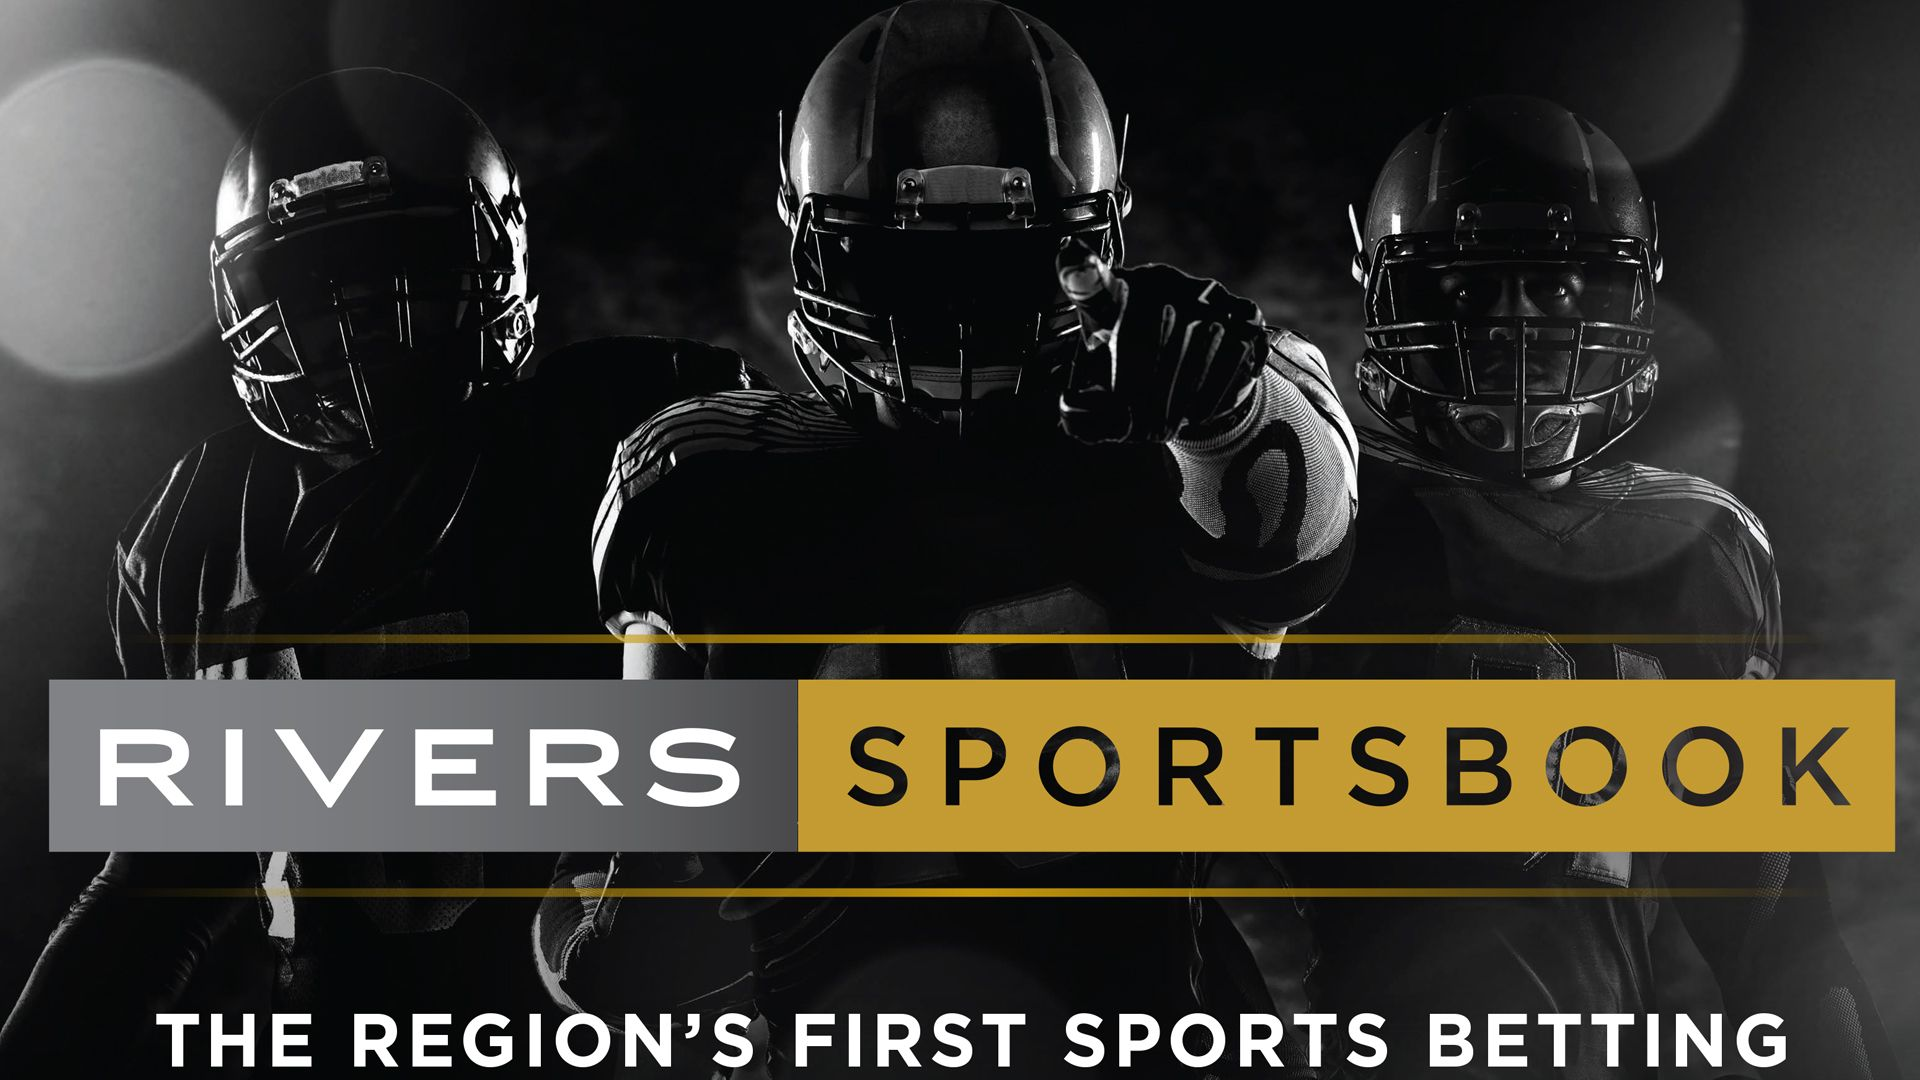 Rivers online sportsbook is now live within week of the